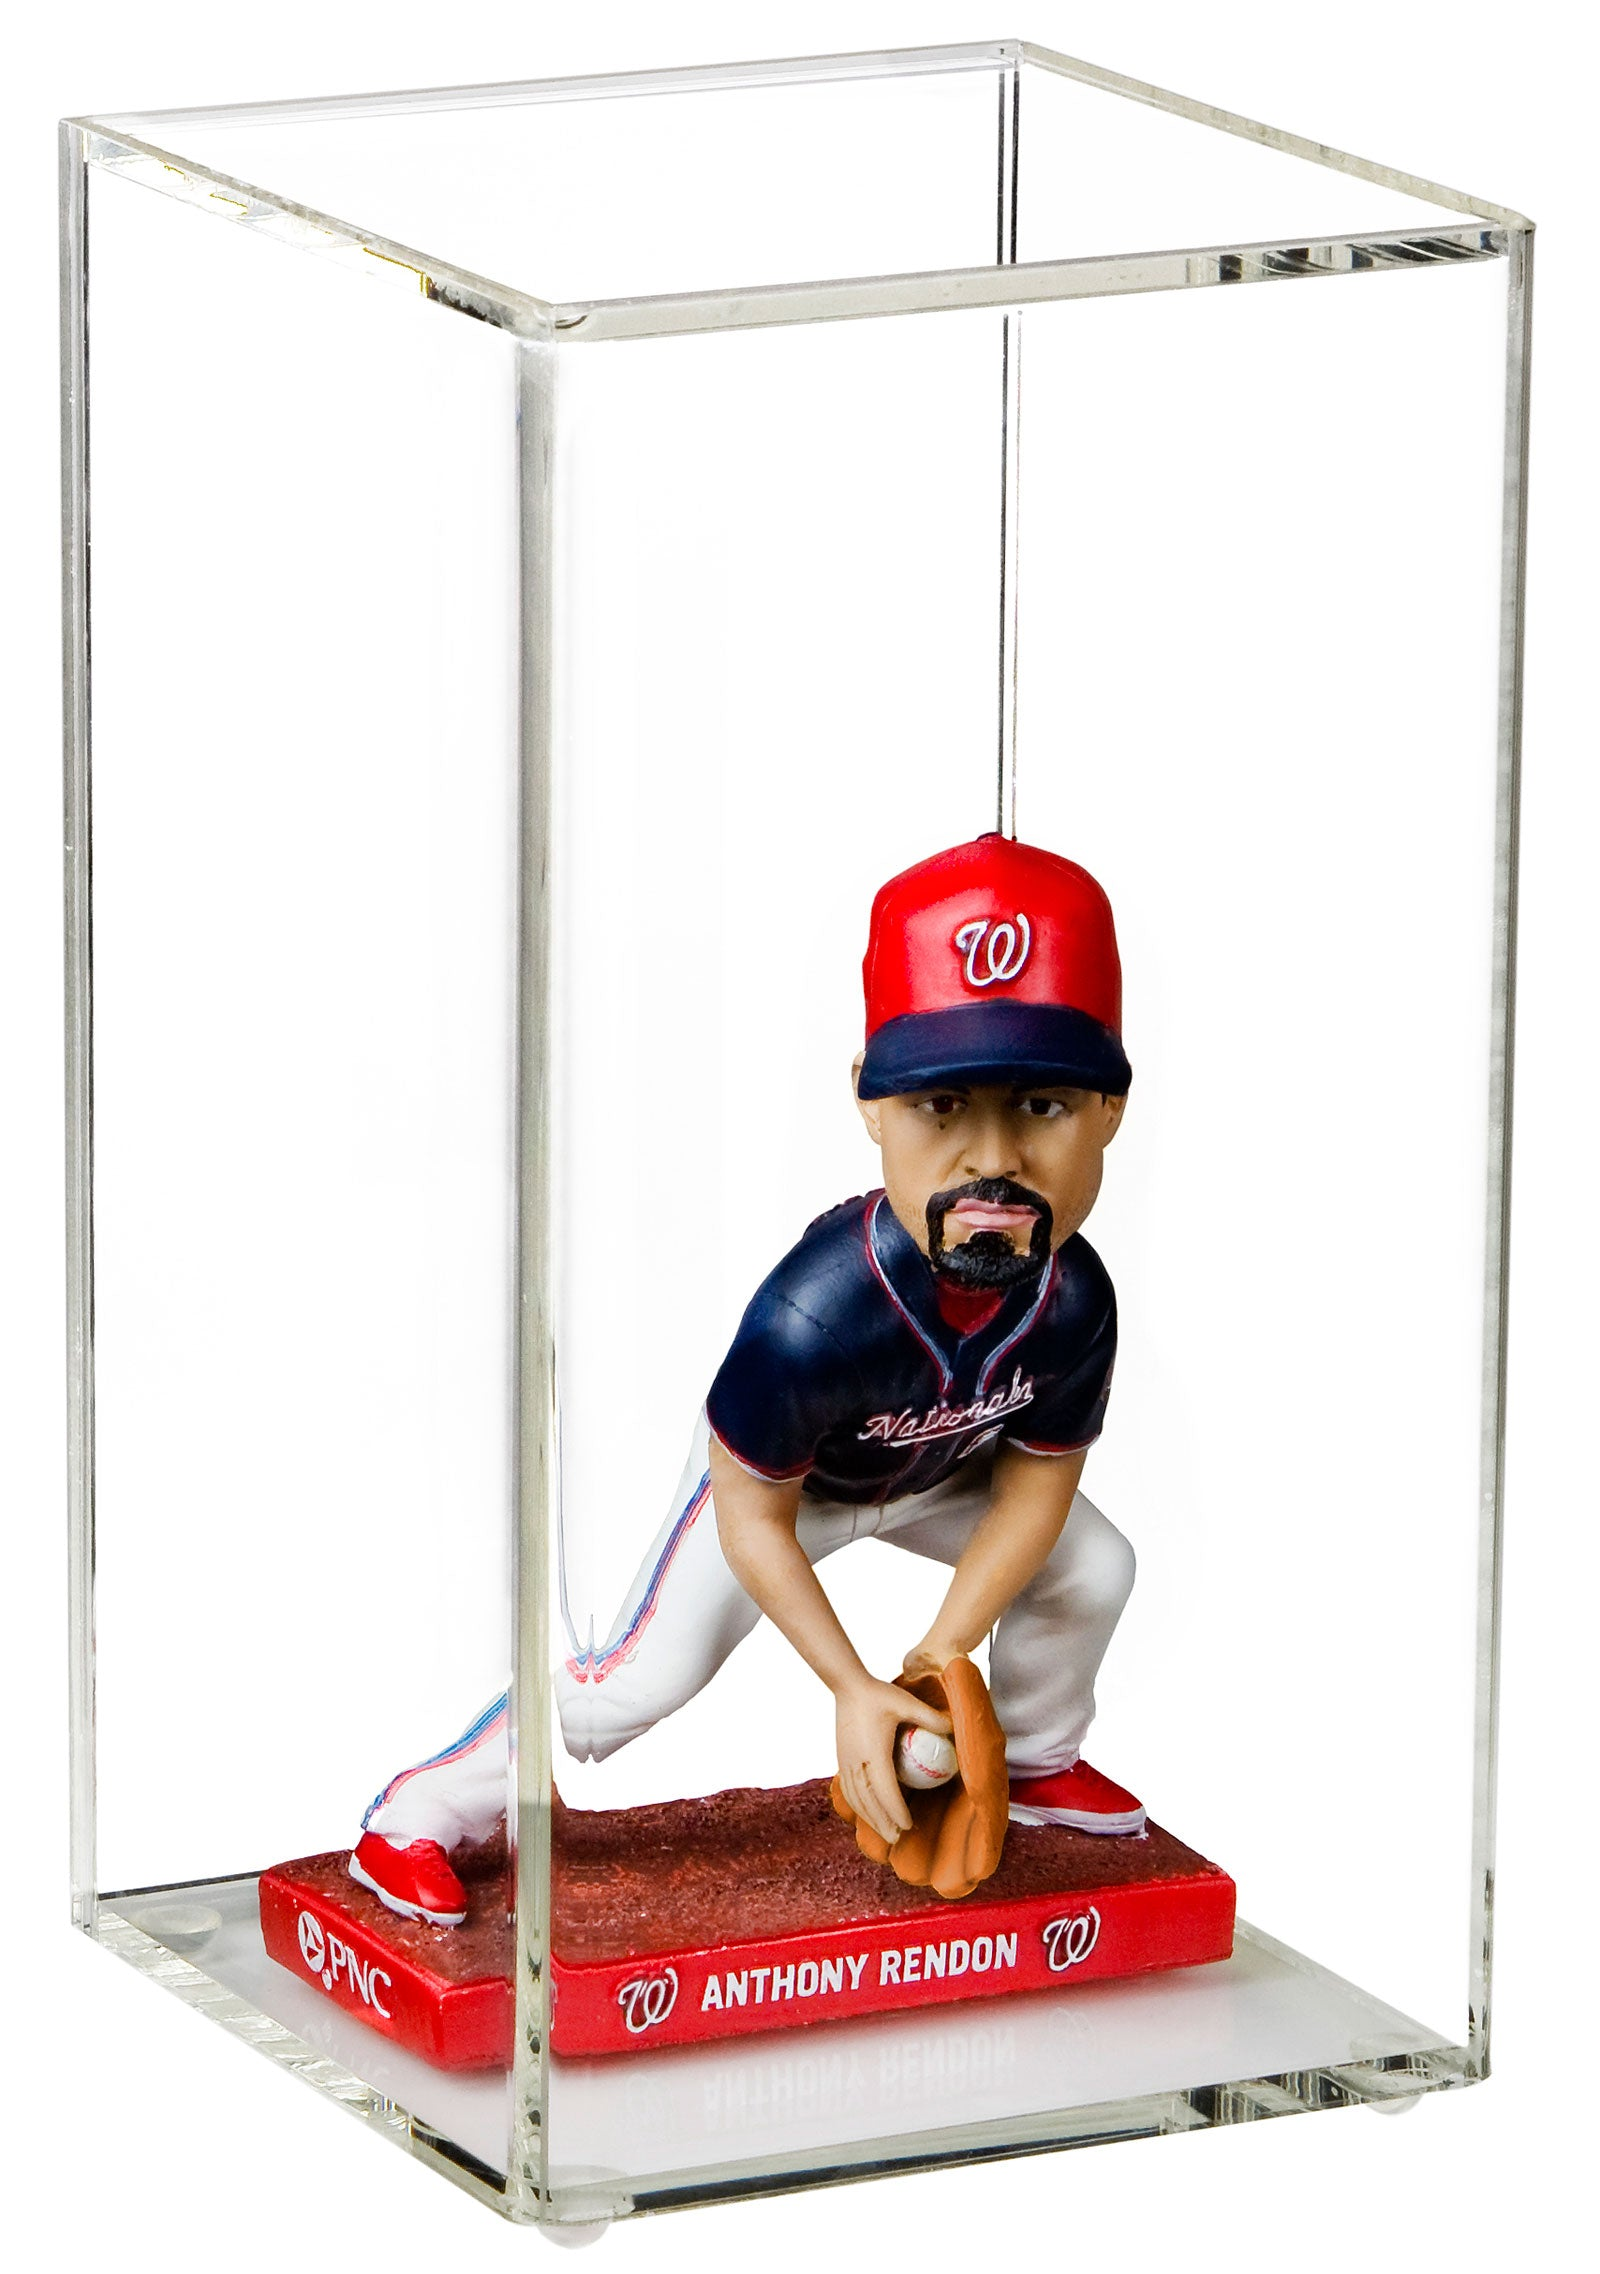 Geeking on Sports, Comics and Other Things - The Man Cave: Baseball Bobbleheads